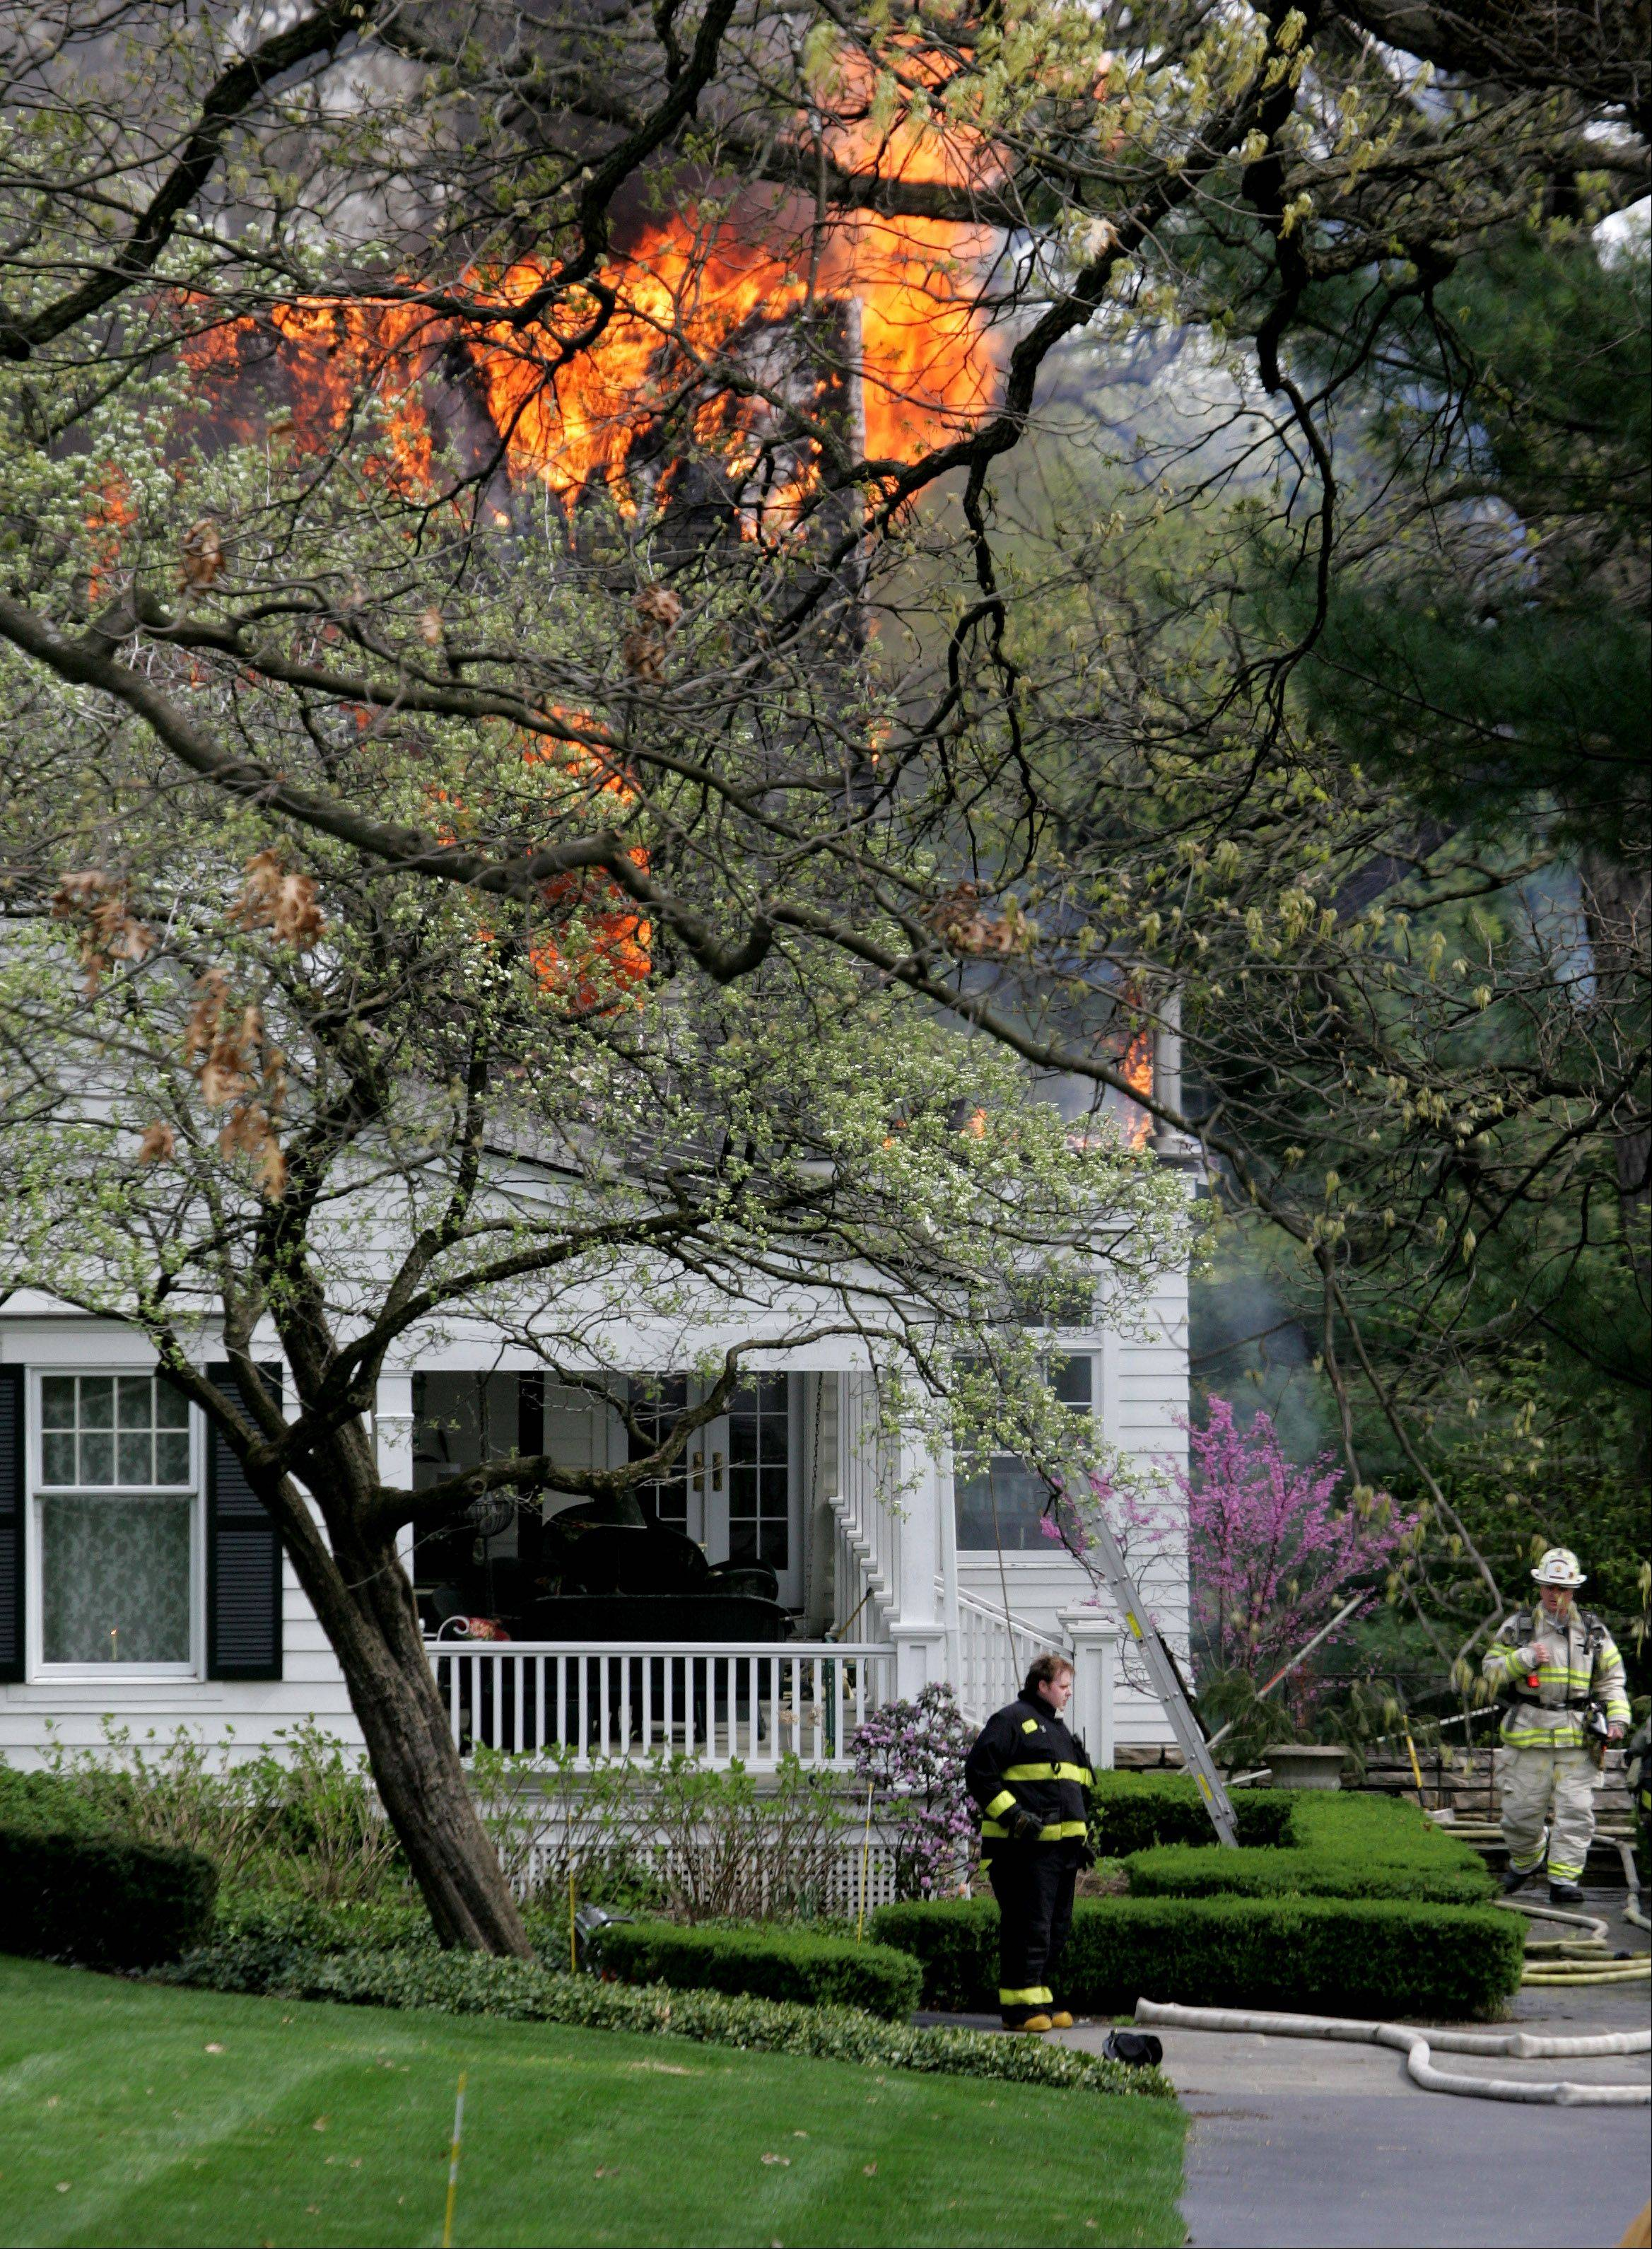 Firefighters from Glen Ellyn and neighboring departments battle a house fire Tuesday on the 1S400 block of Sunnybrook Lane.